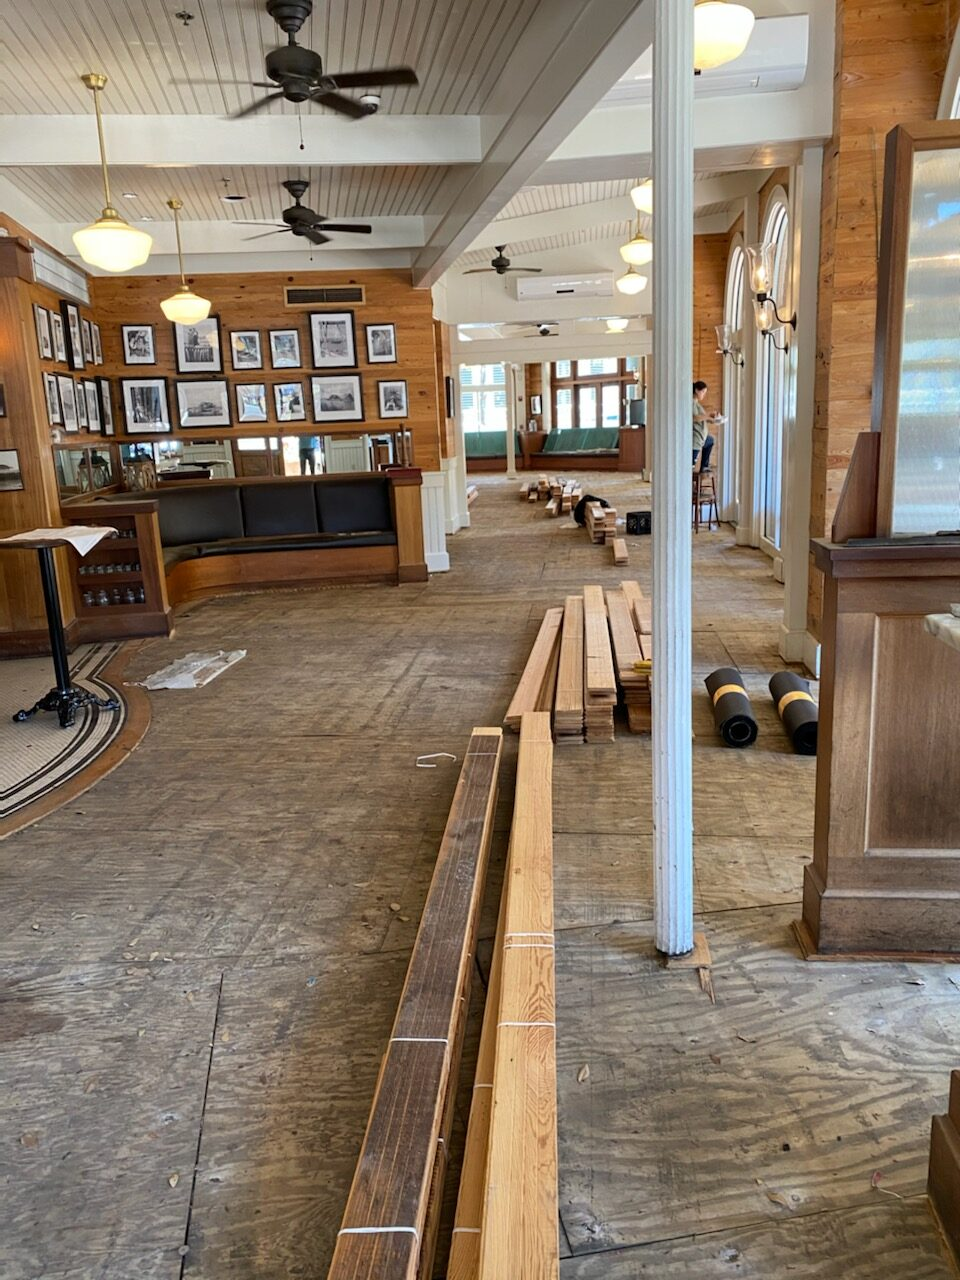 Photo of subflooring in a restaurant. New wood acclimating to be installed.